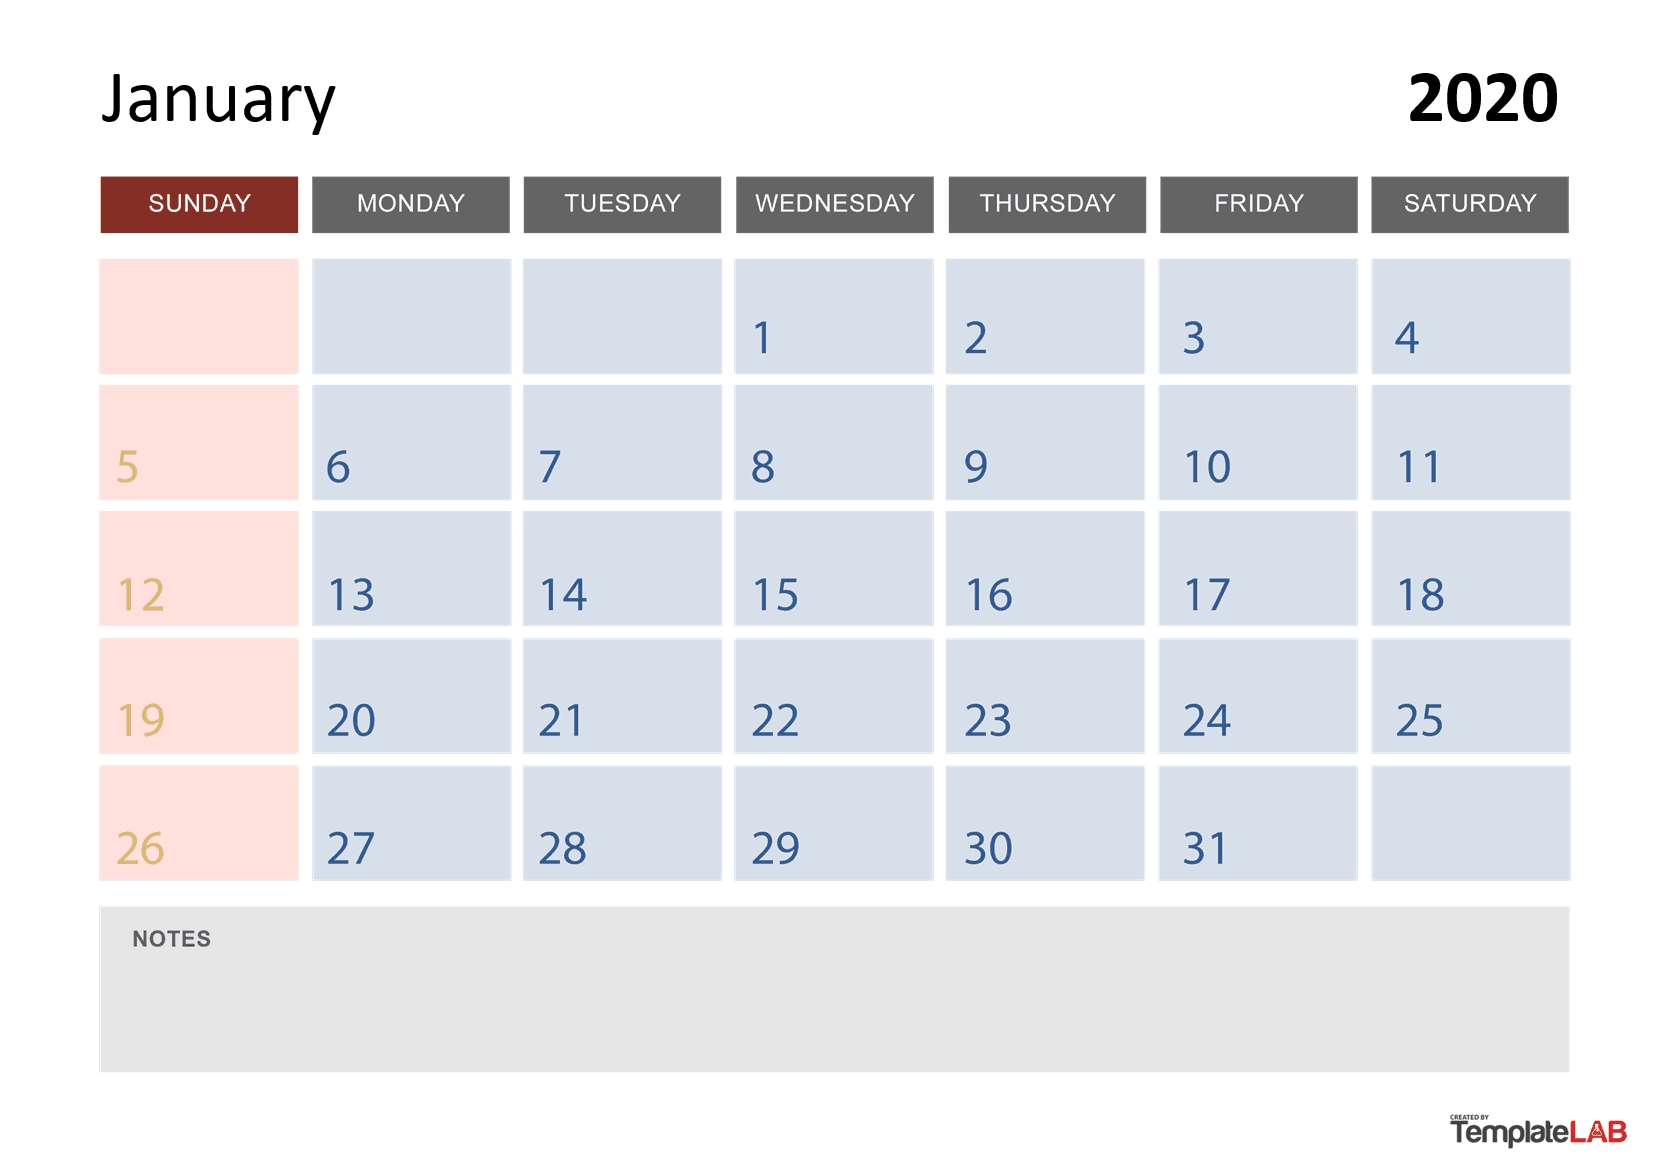 2020 Printable Calendars [Monthly, With Holidays, Yearly] ᐅ intended for Free Printable 2020 Calendar With Space To Write